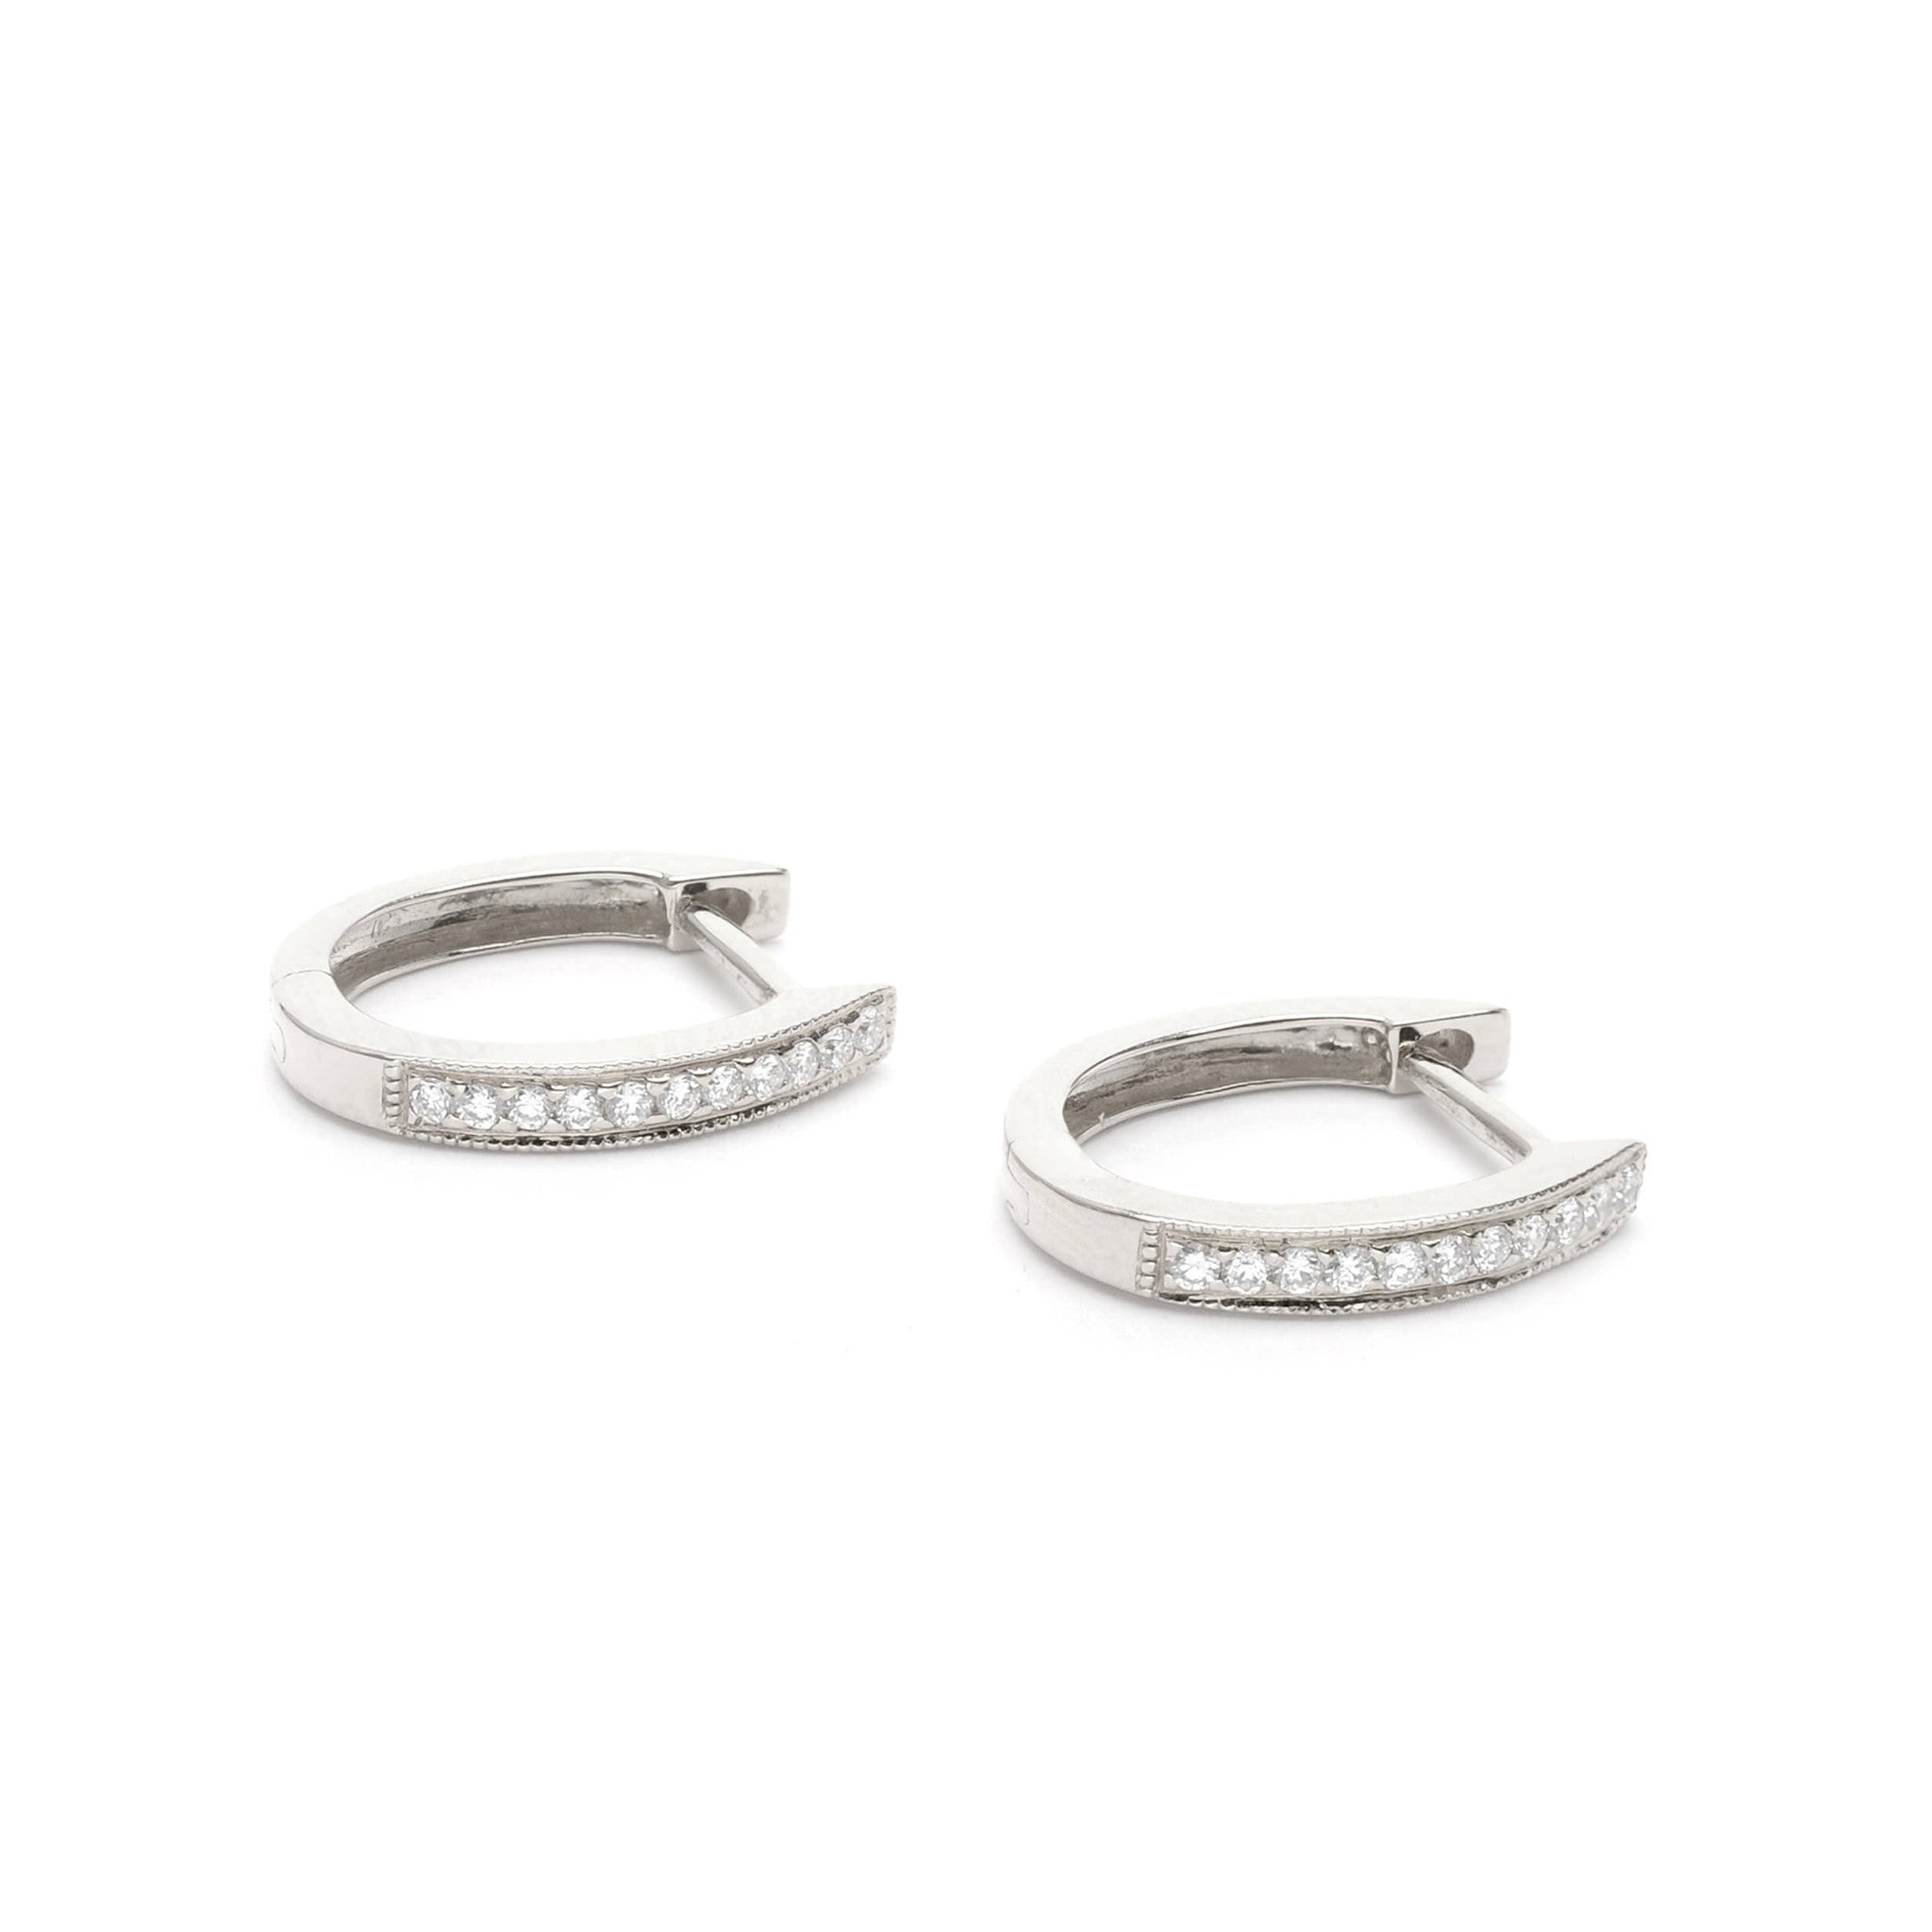 18kt Gold hoop earrings with White Diamonds